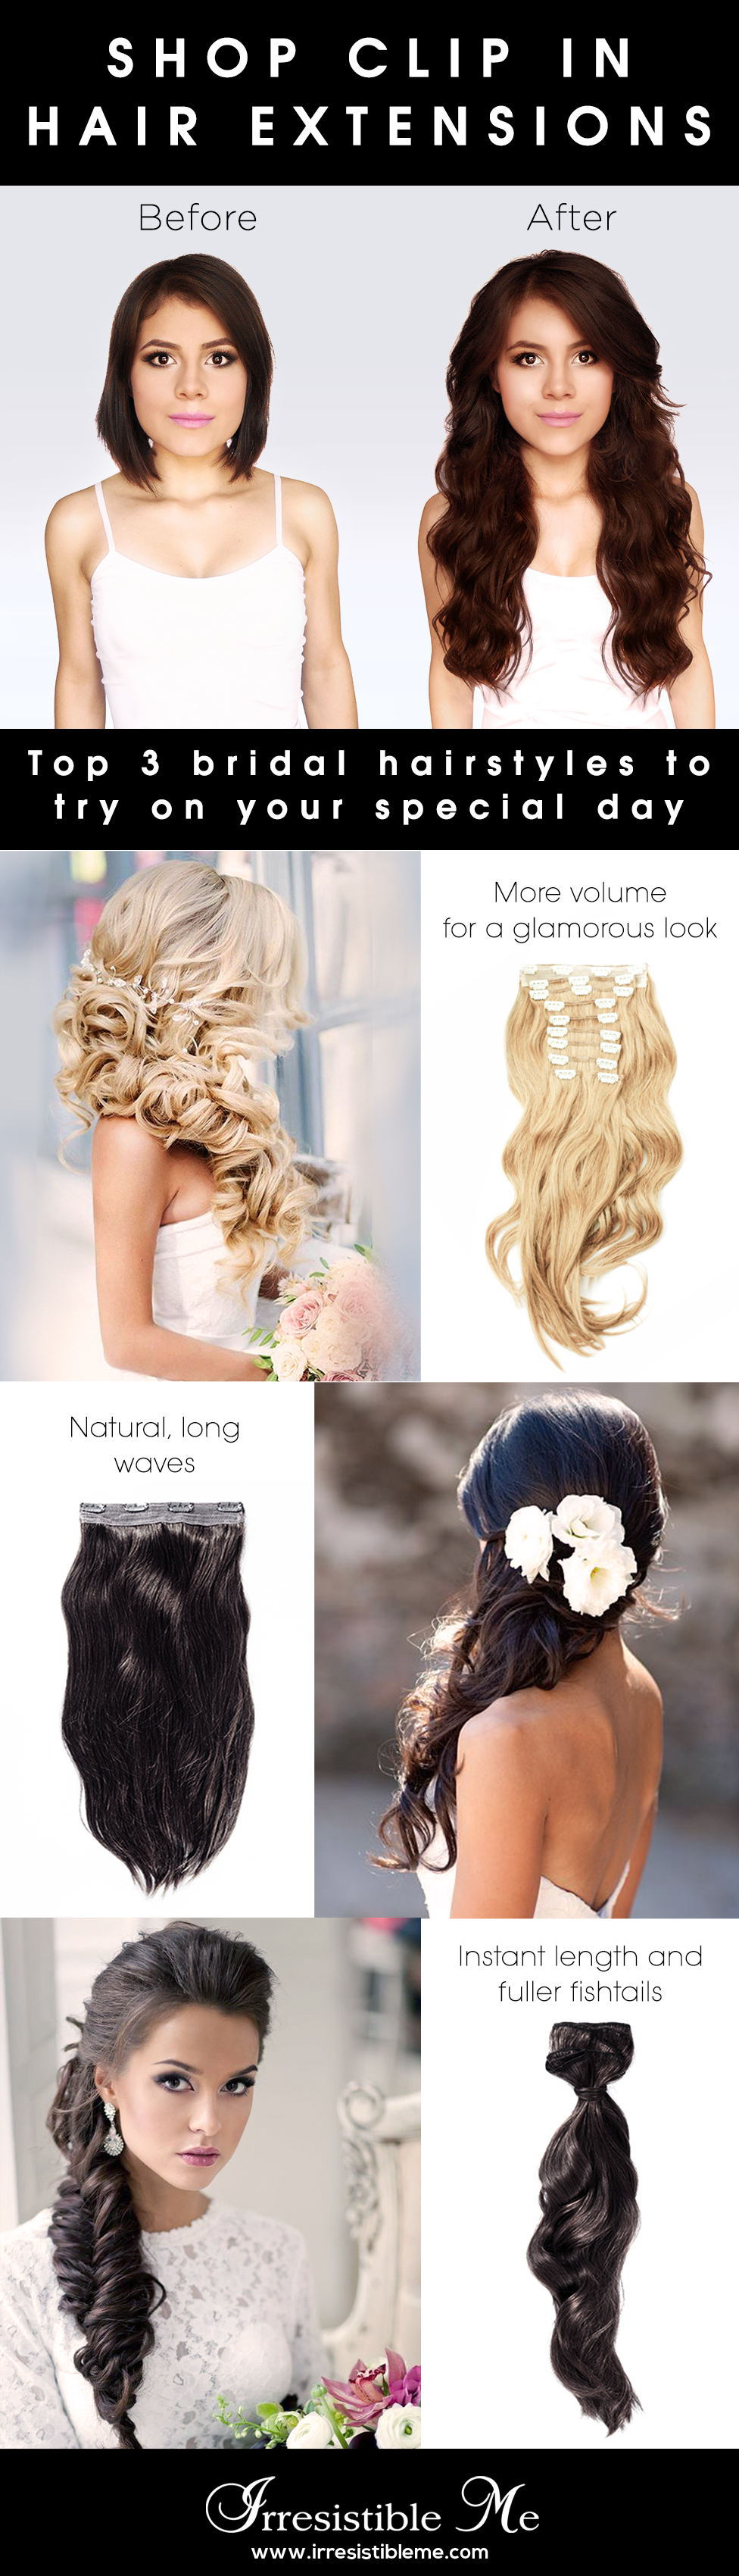 Make A Dramatic Hairstyle Change With Irresistible Me 100 Human Remy Clip In Hair Extensions You Can Add Length Hair Styles Long Hair Styles Hair Extensions